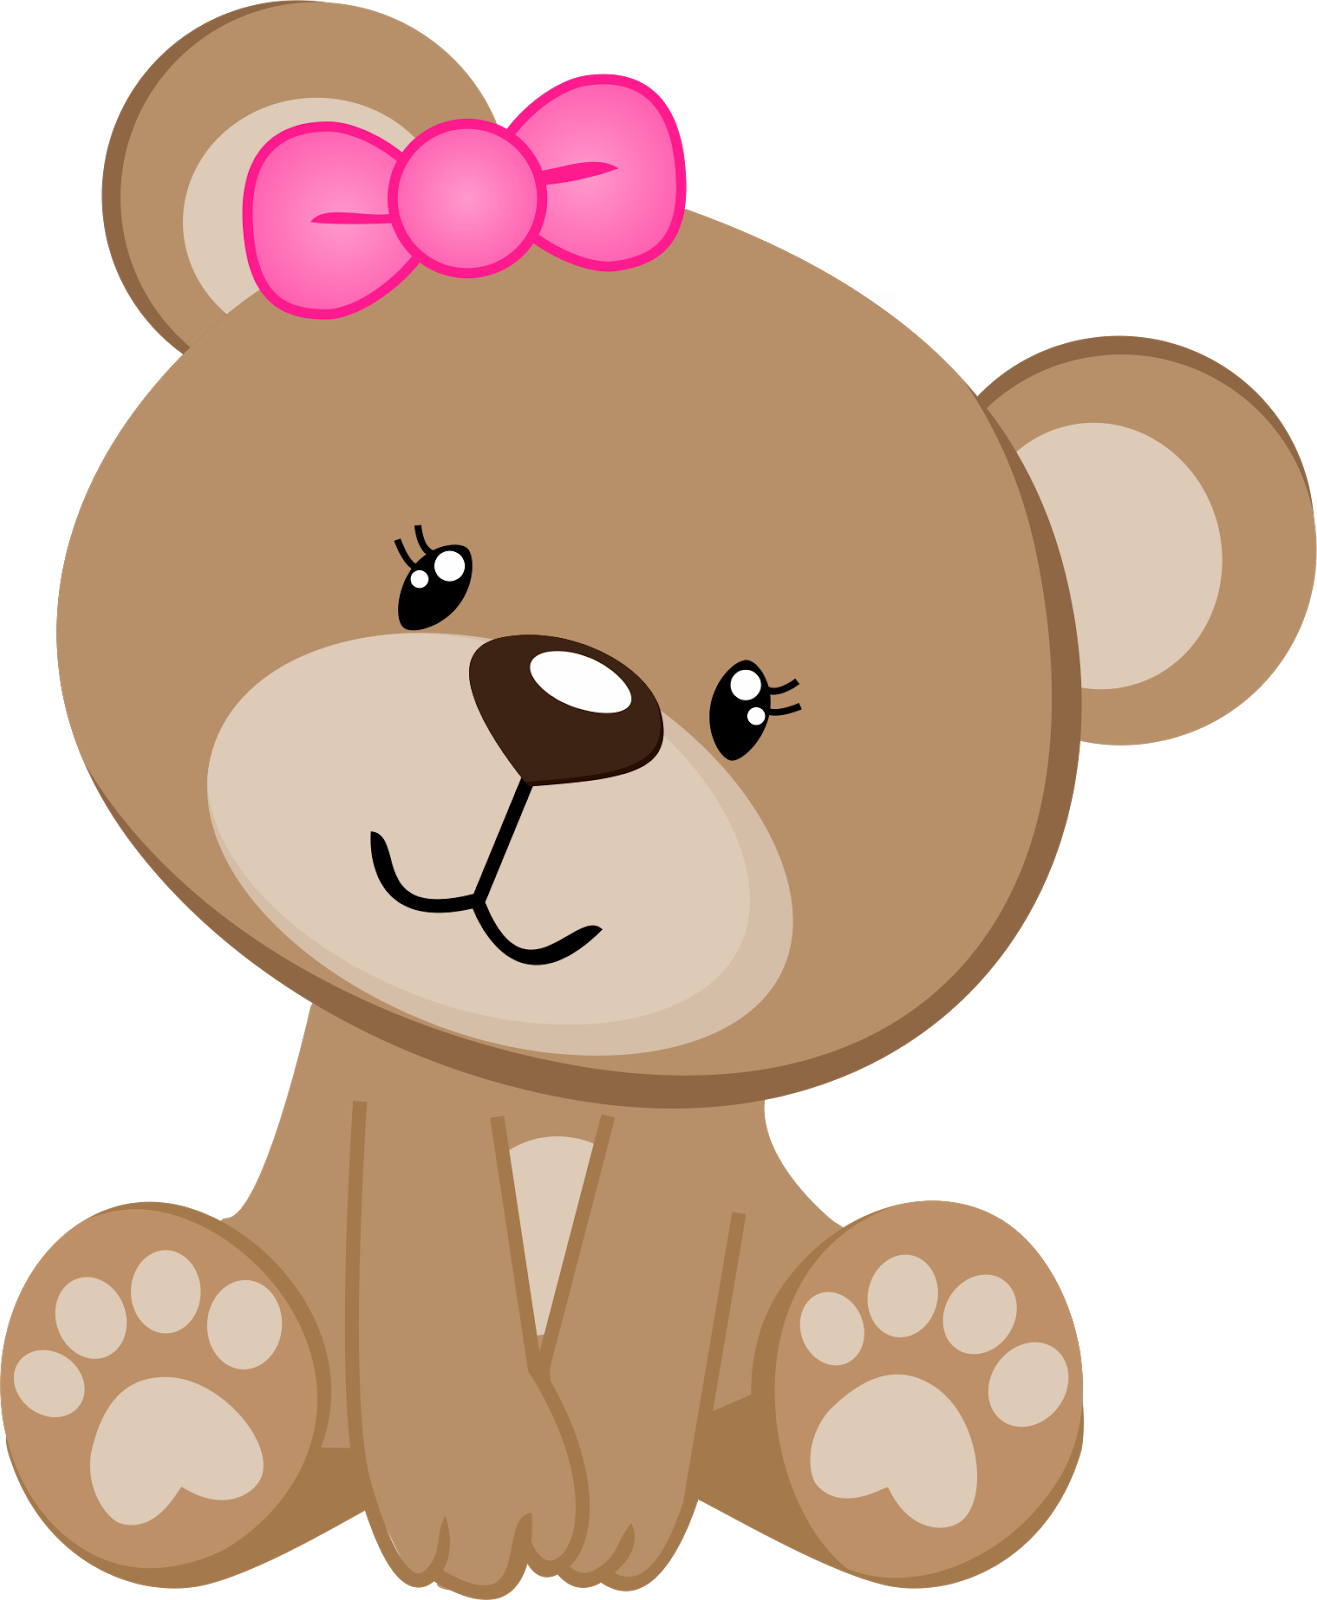 TUBES URSINHOS | Clip Art (Teddy Bears) | Pinterest